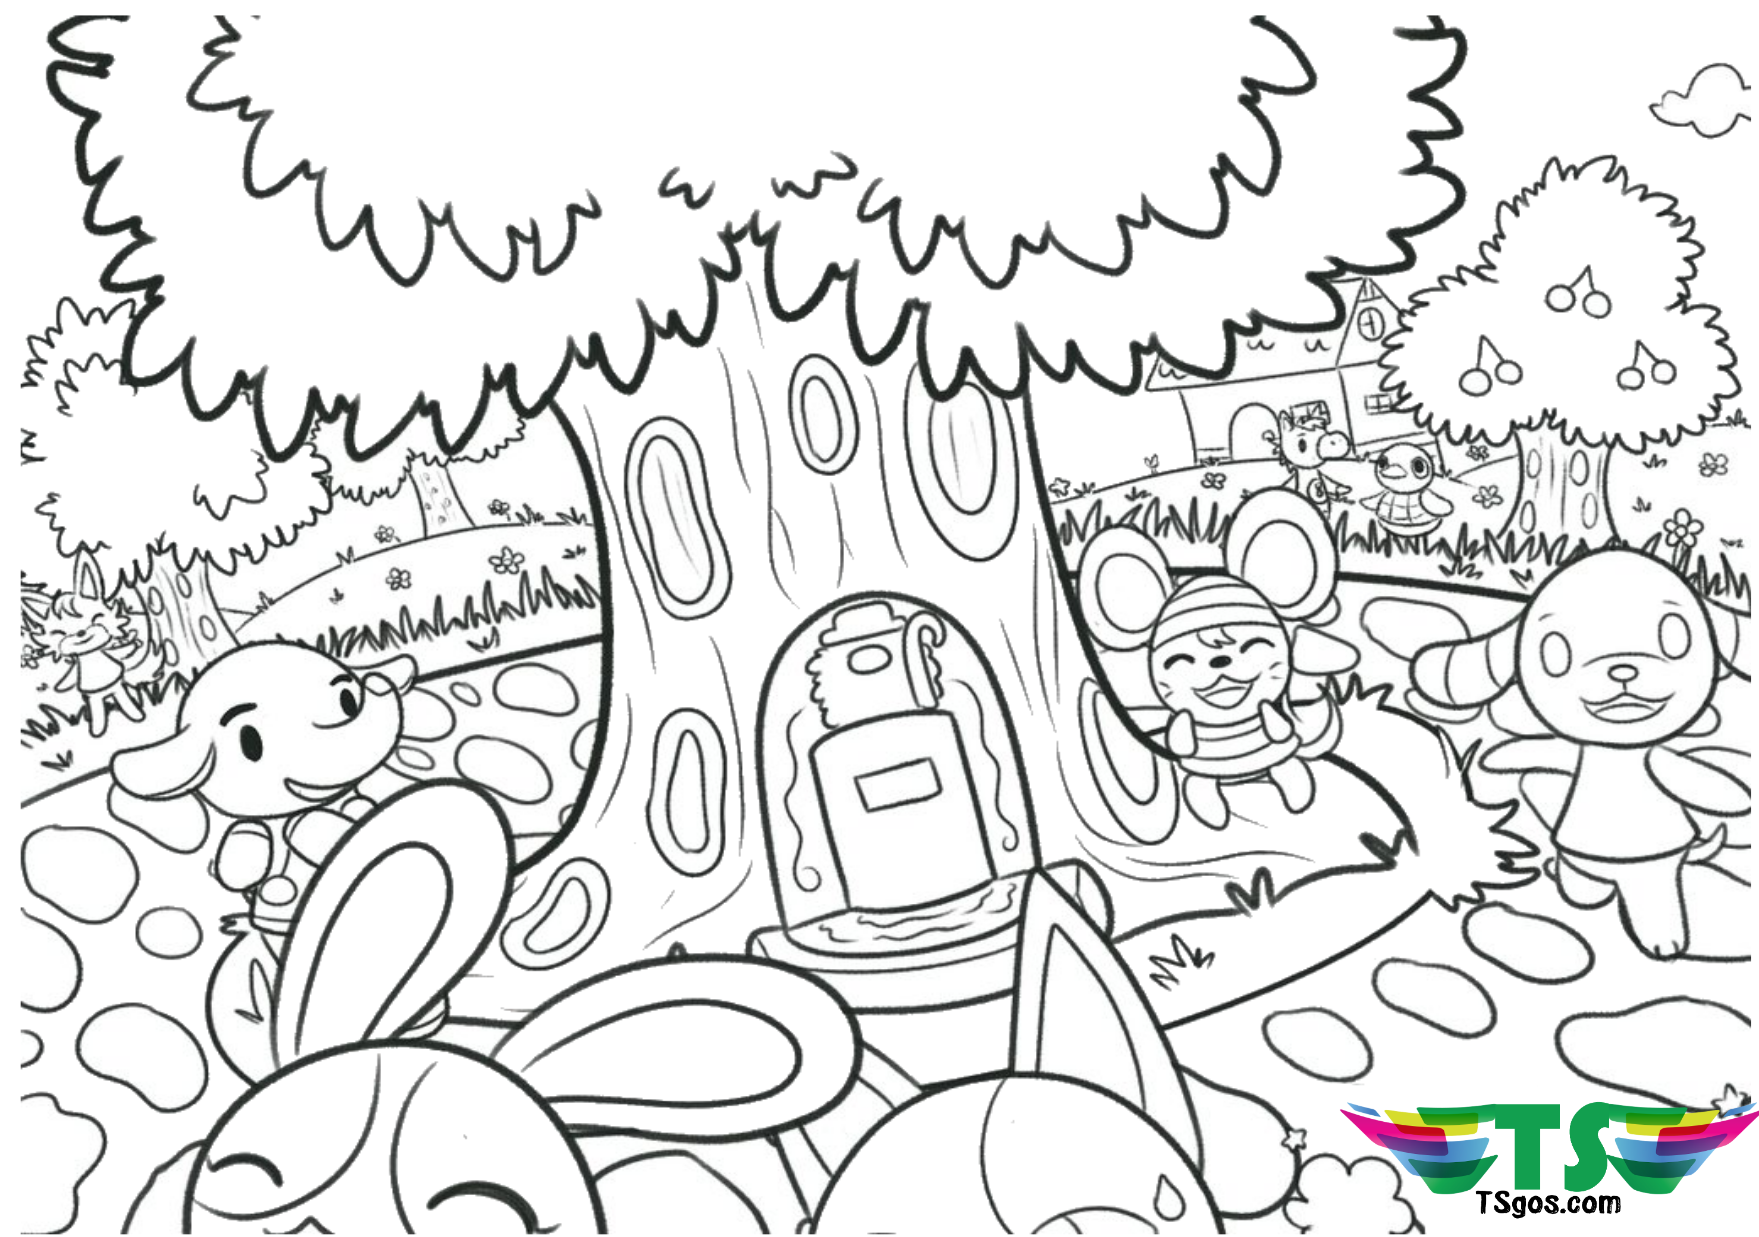 Animal crossing free download and printable coloring page Wallpaper